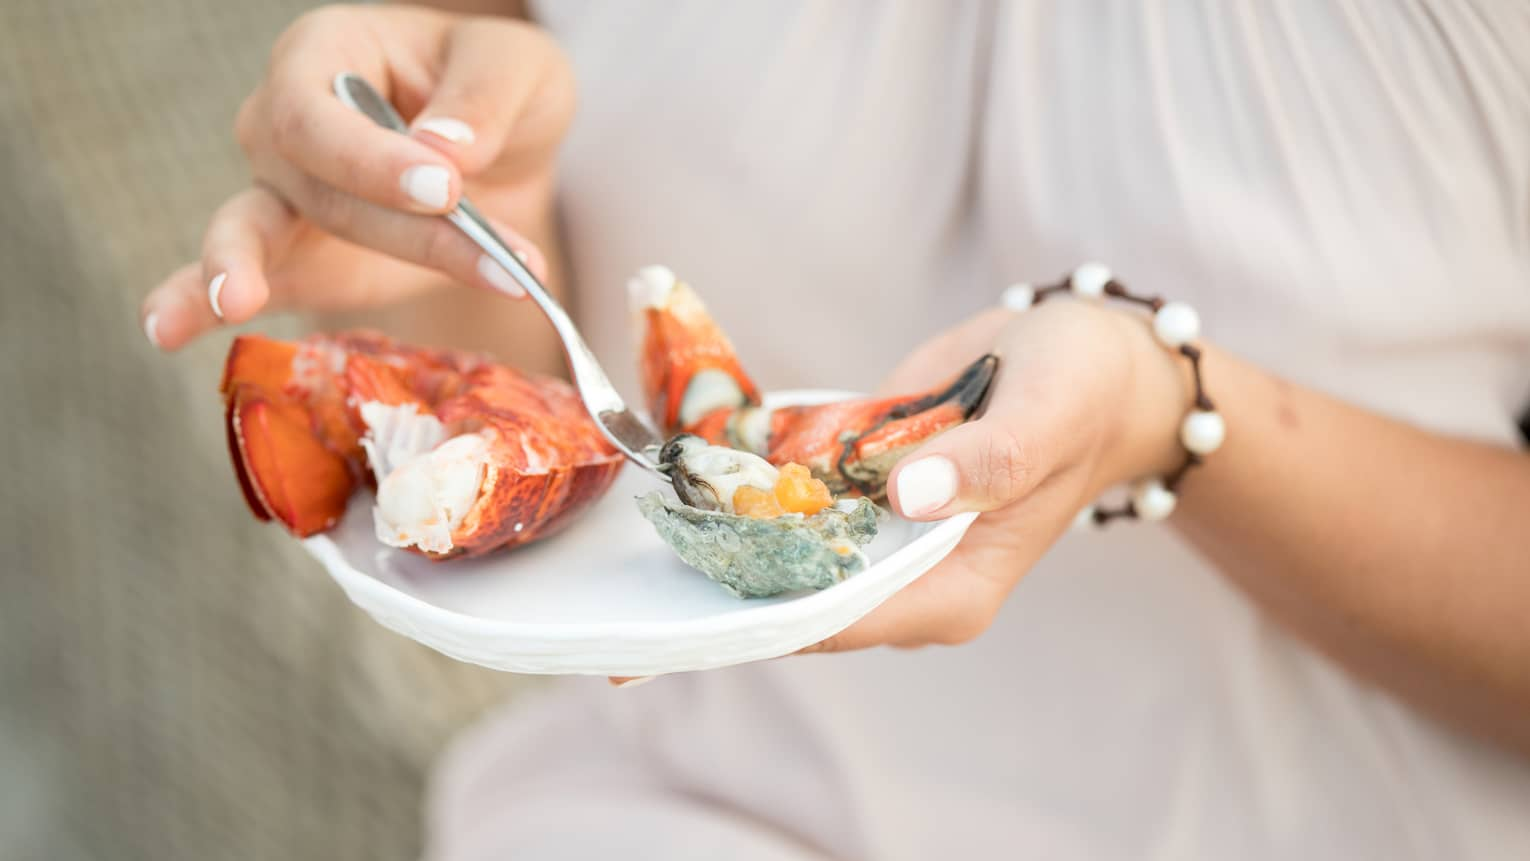 Close-up of woman holding small plate with fresh seafood, digging fork into oyster